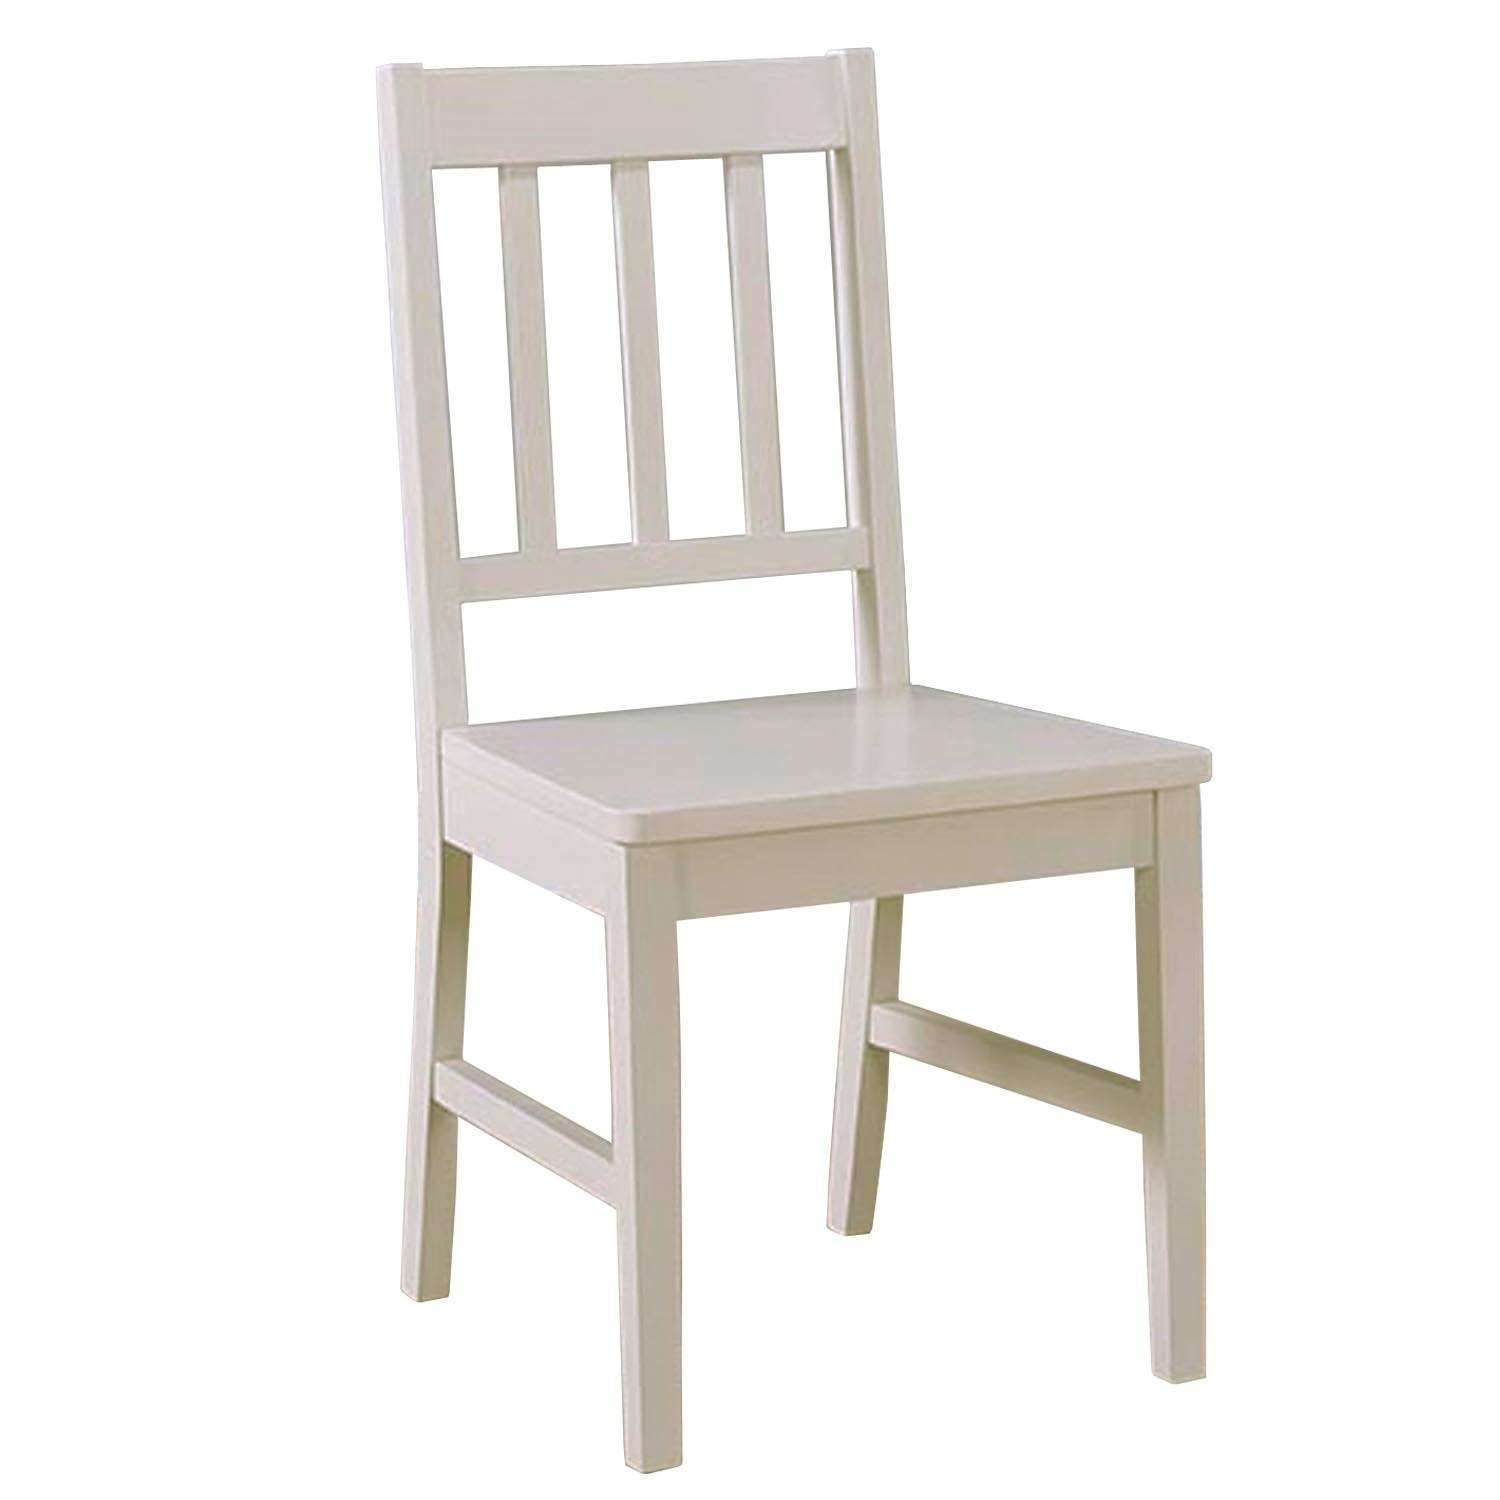 White wooden dining dressing table chair ebay for Dining table dressing